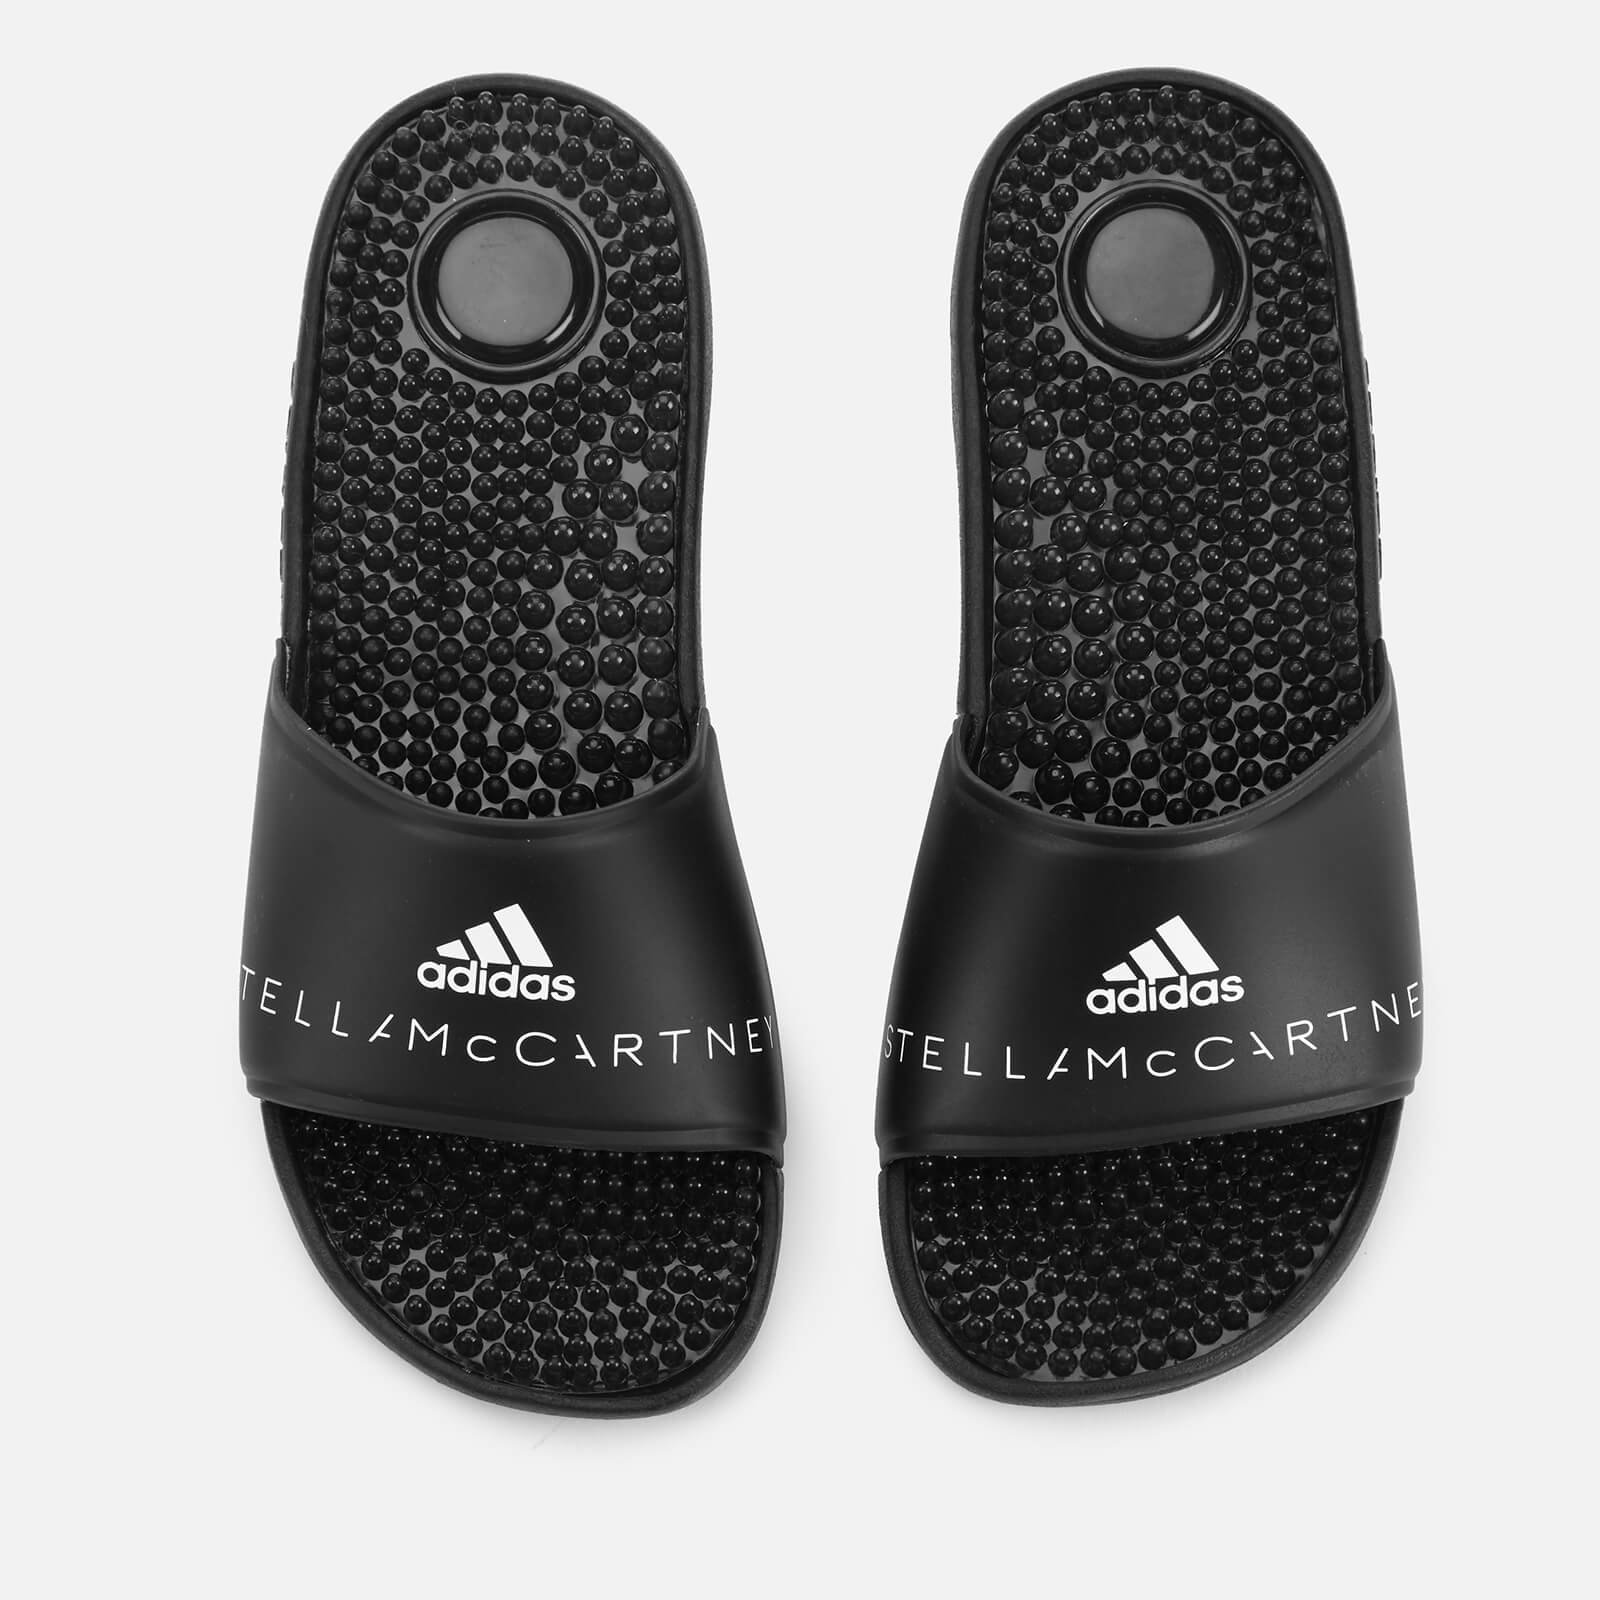 f5ef29c01 adidas by Stella McCartney Women s Adissage Slide Sandals - Core Black White  - Free UK Delivery over £50